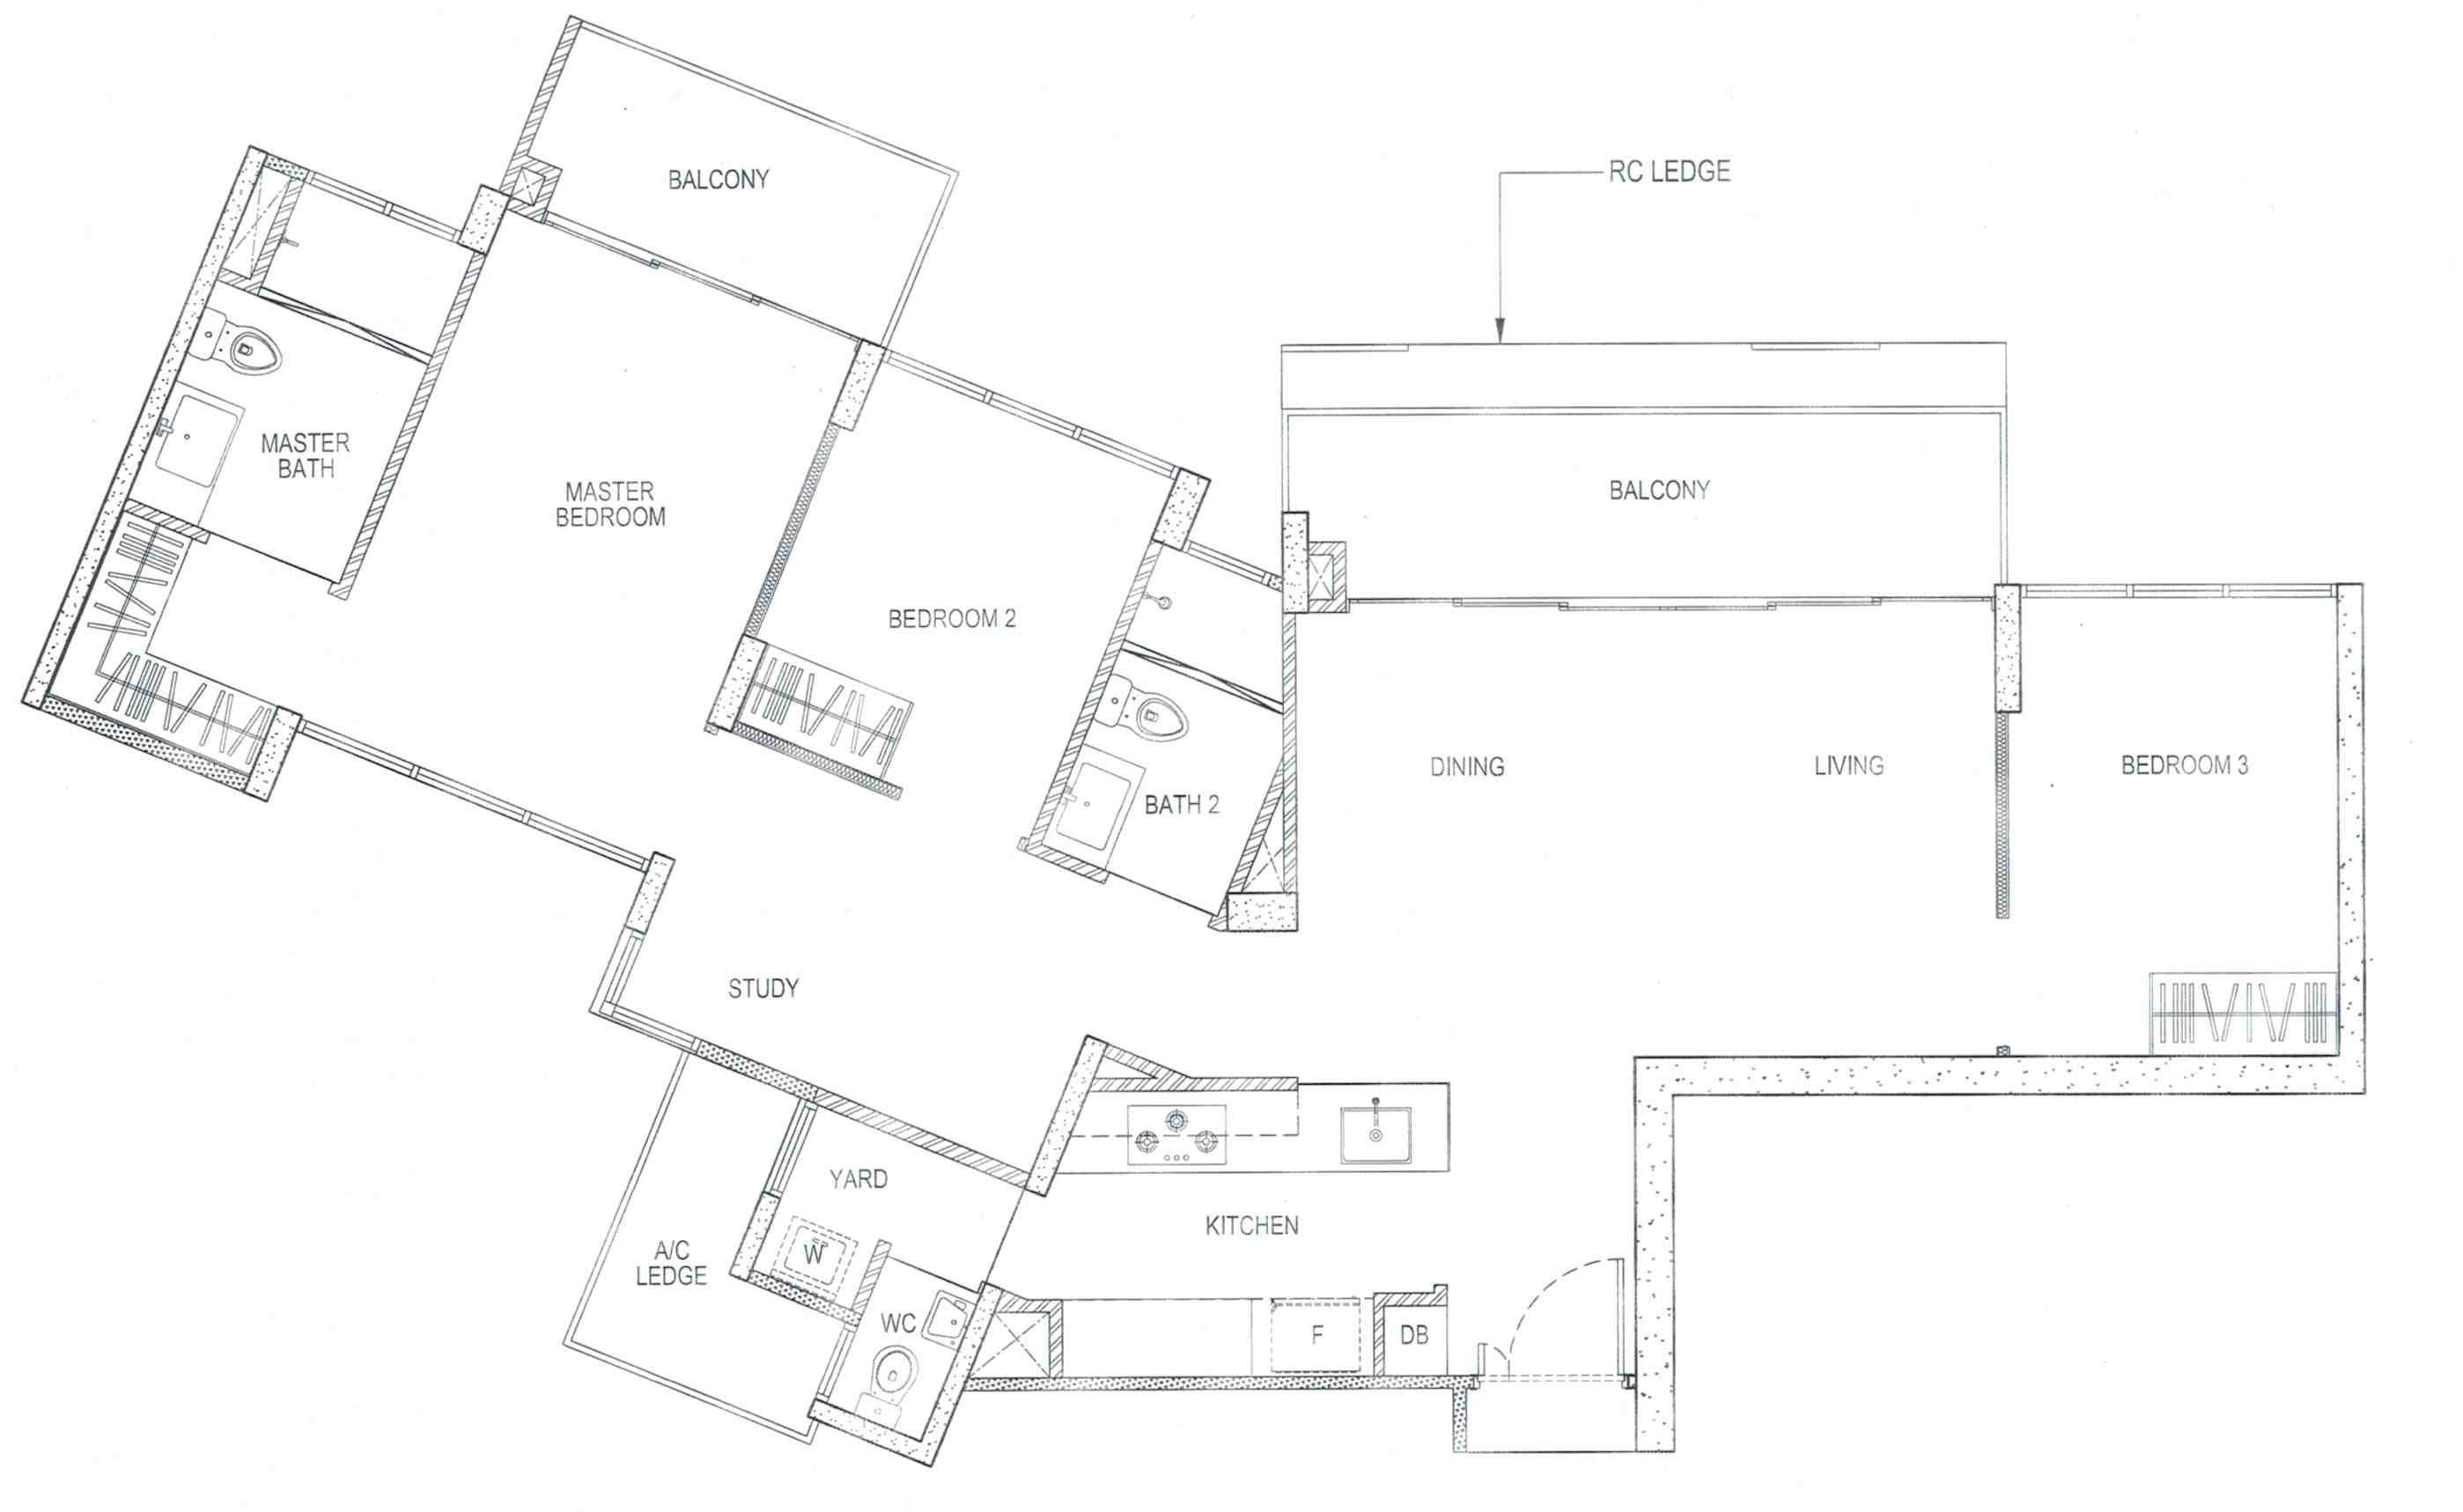 Riverisles floorplan